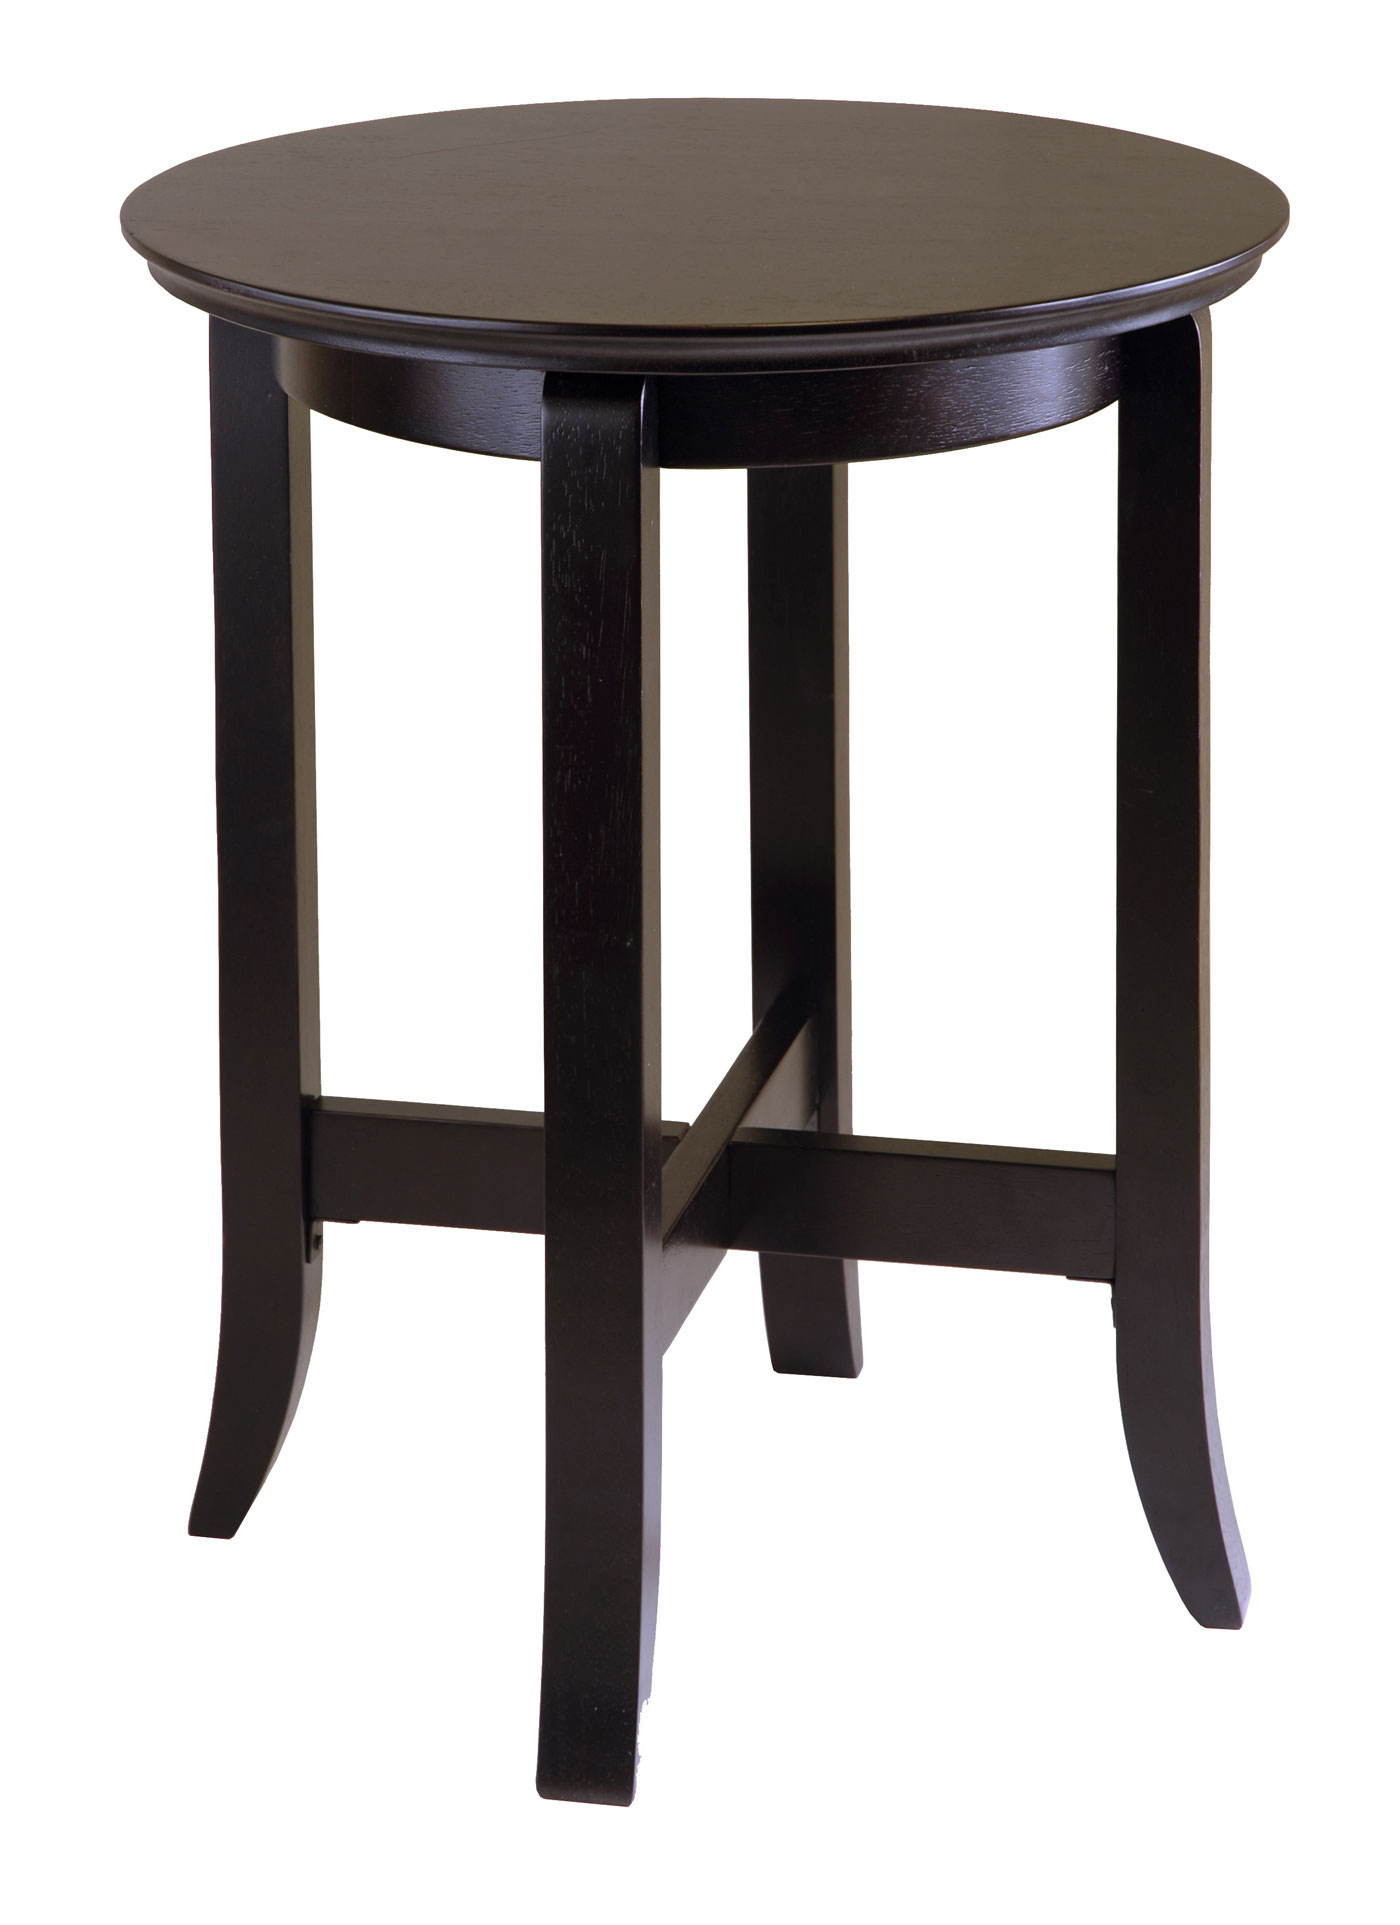 probably terrific nice round end table with drawer espresso wood side coffee set tables bottle rack storage ott butcher block tops kohls free shipping promo farmhouse and chairs